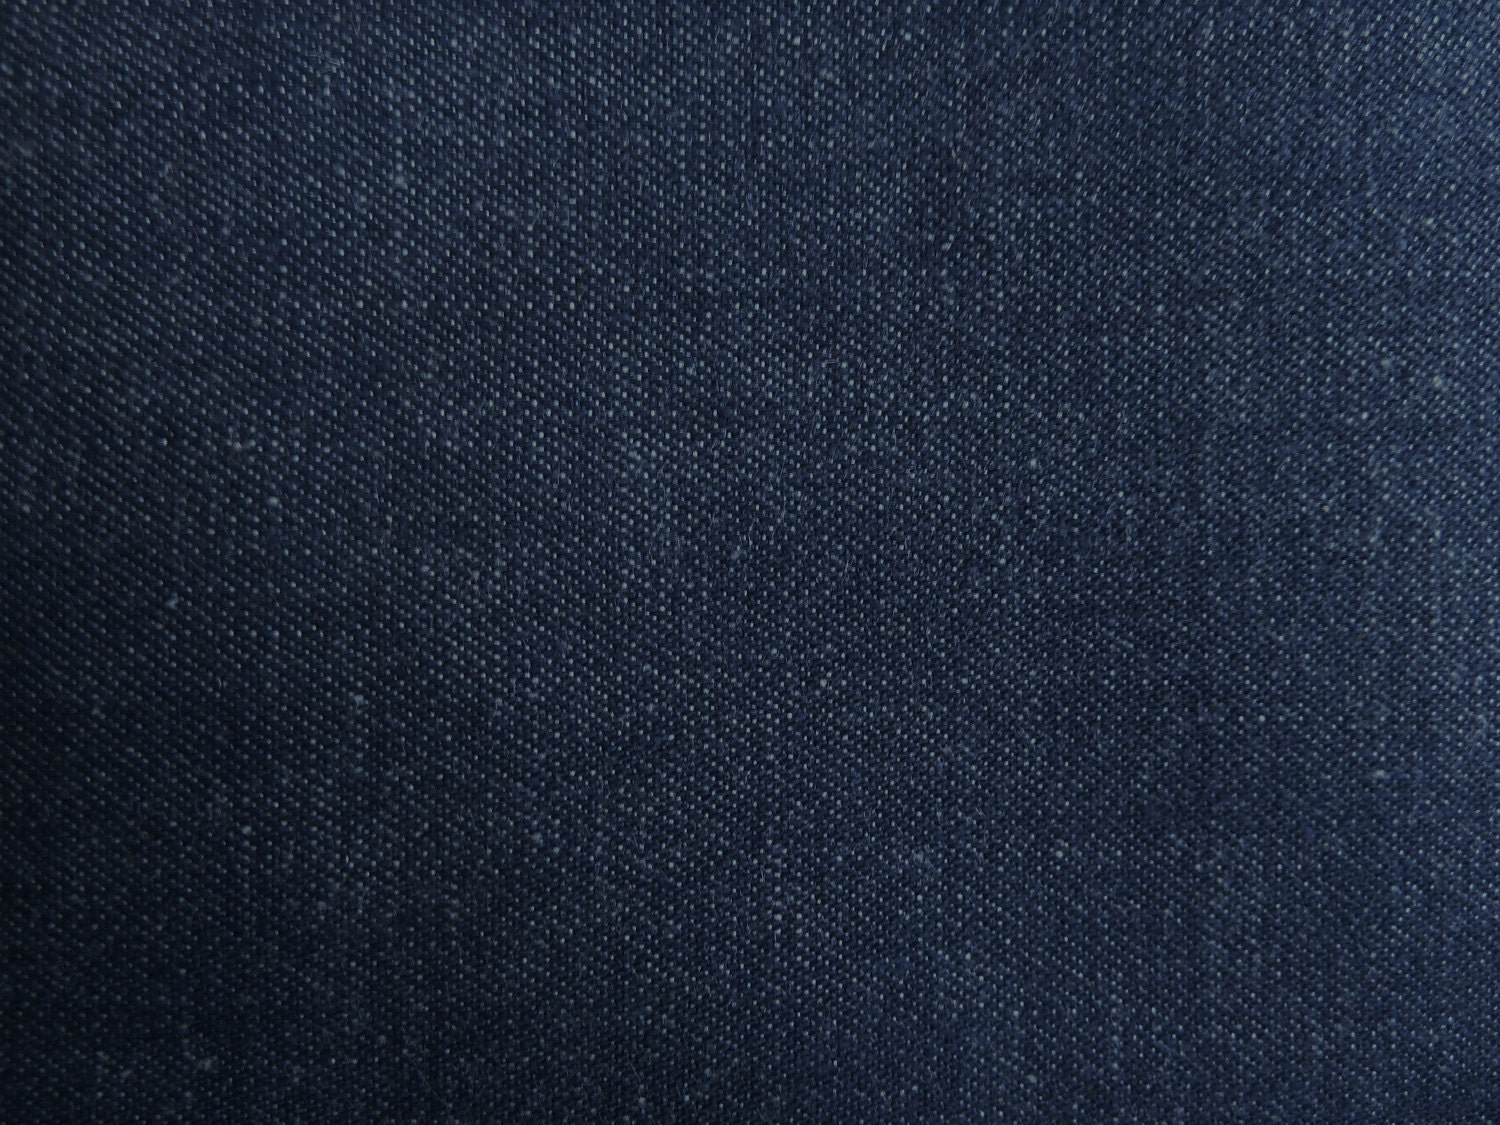 Blue Denim Fabric SALE Use coupon code SOCHI10 for an extra